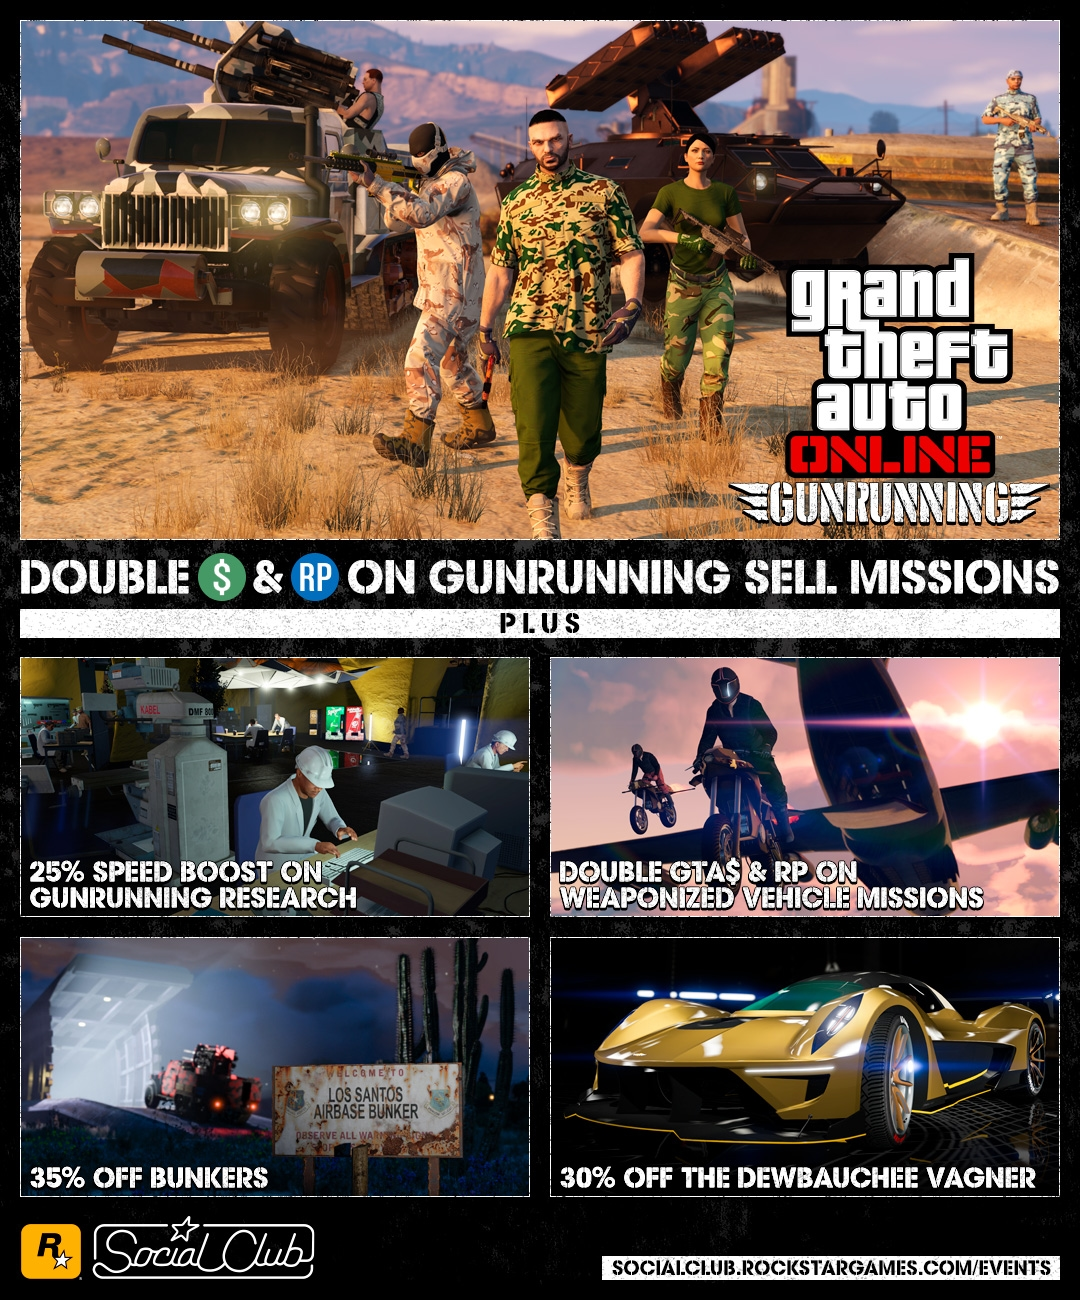 GTA Online: Gunrunning Bonuses, Double GTA$ & RP on Stunt